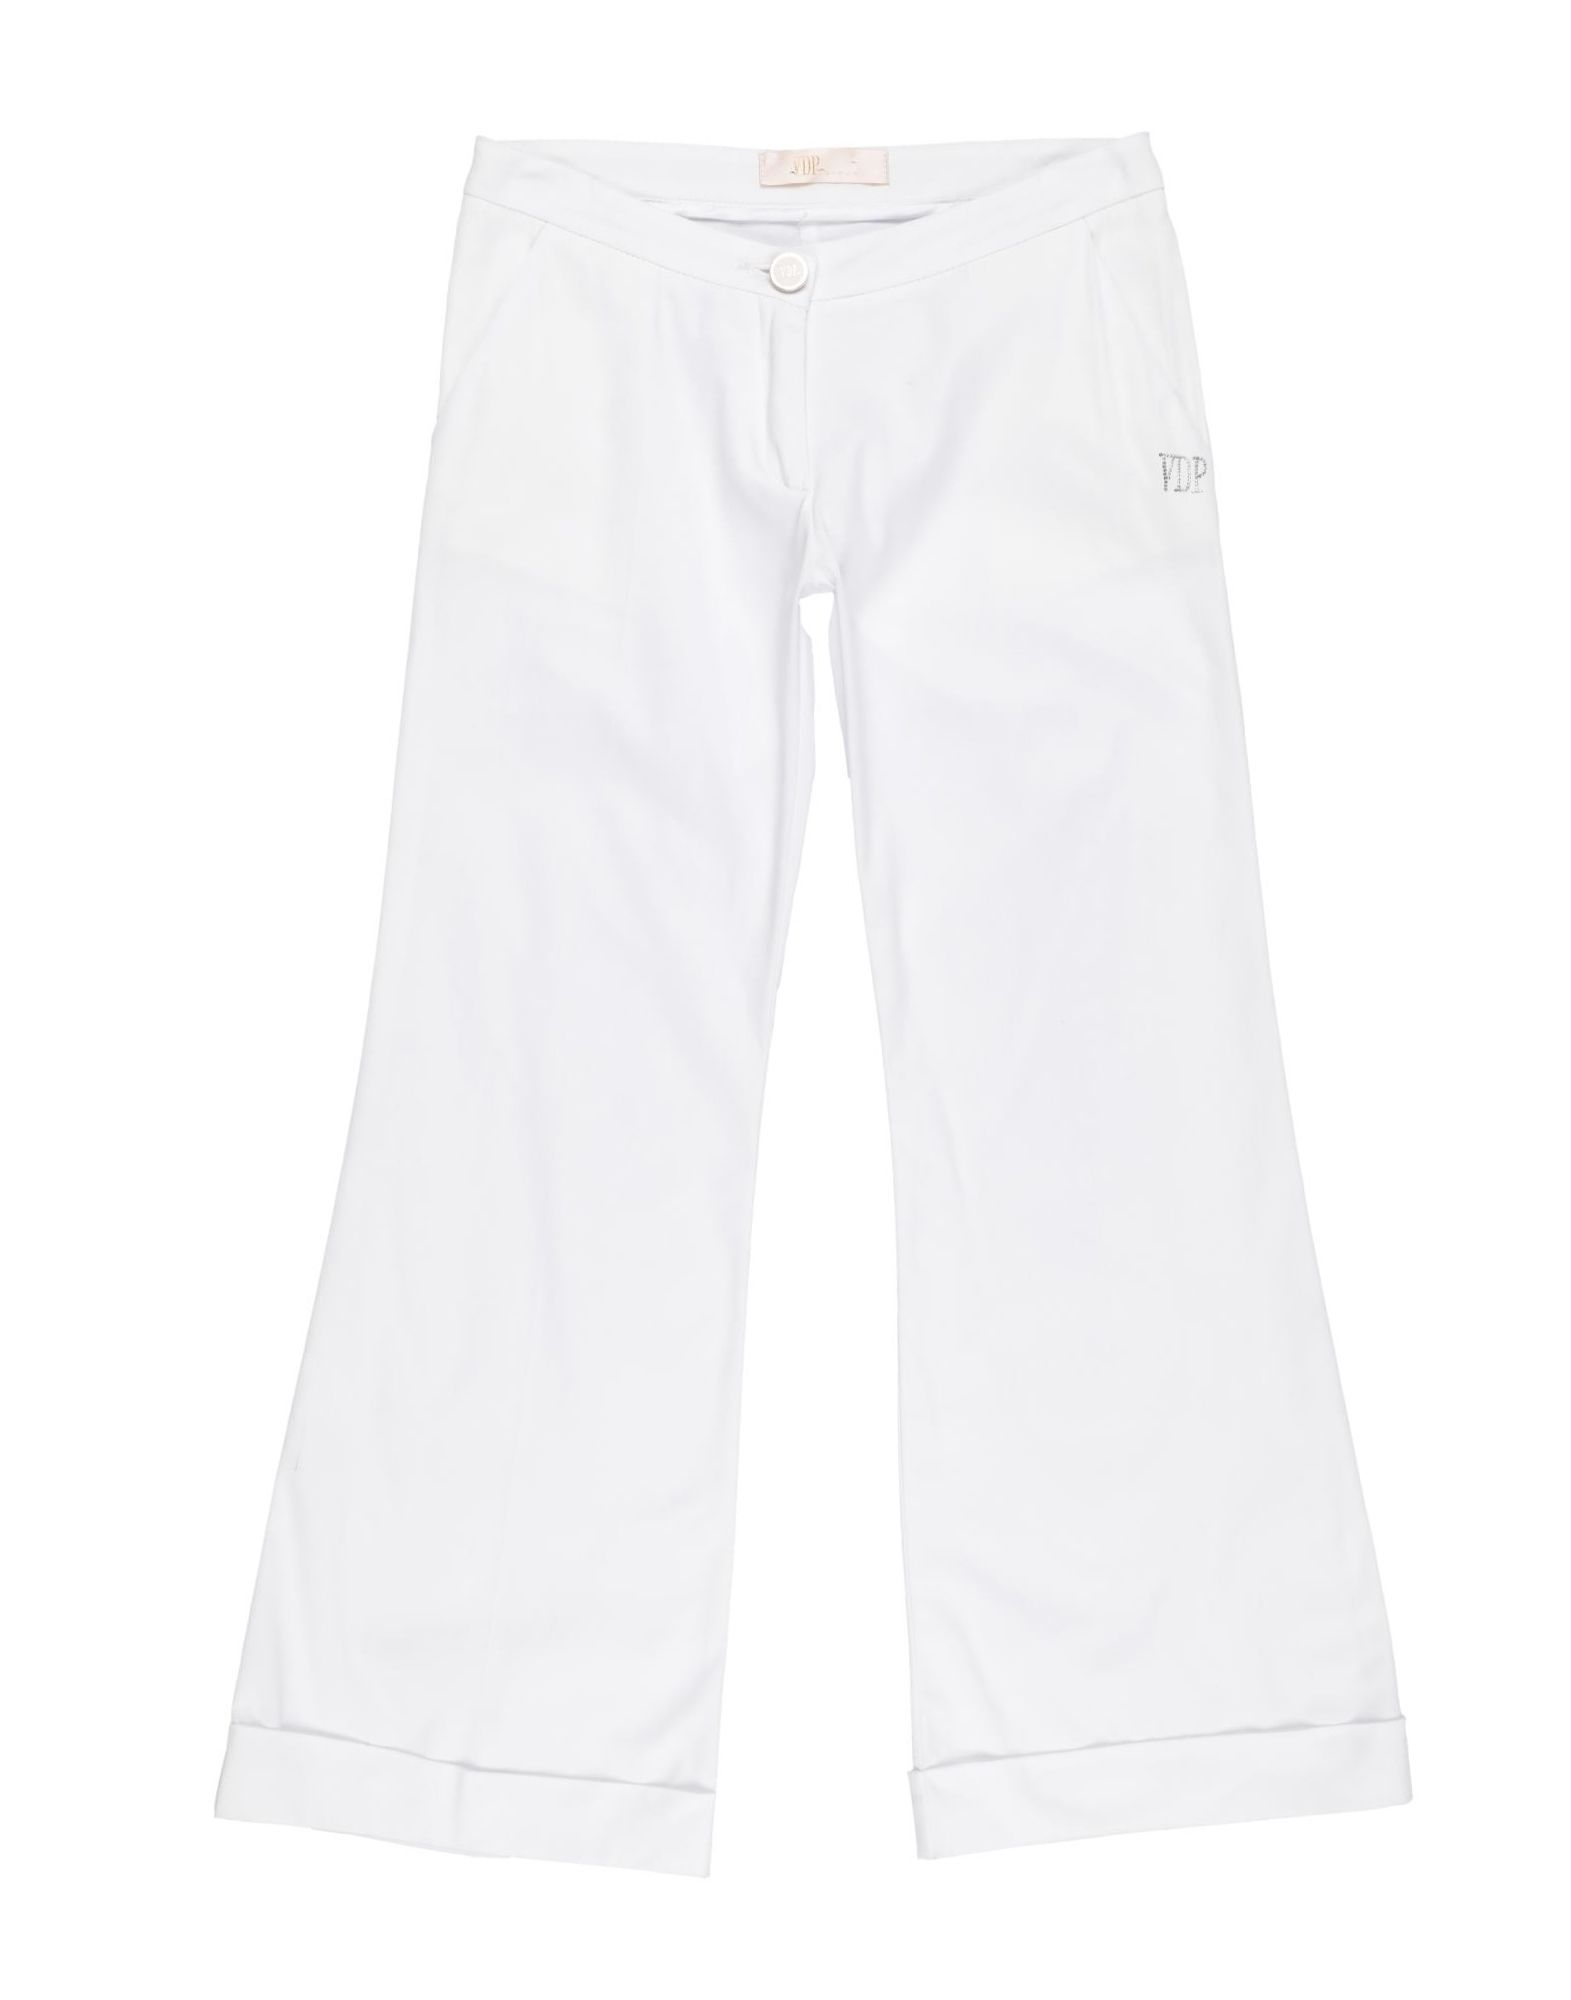 Vdp Collection Kids' Casual Pants In White